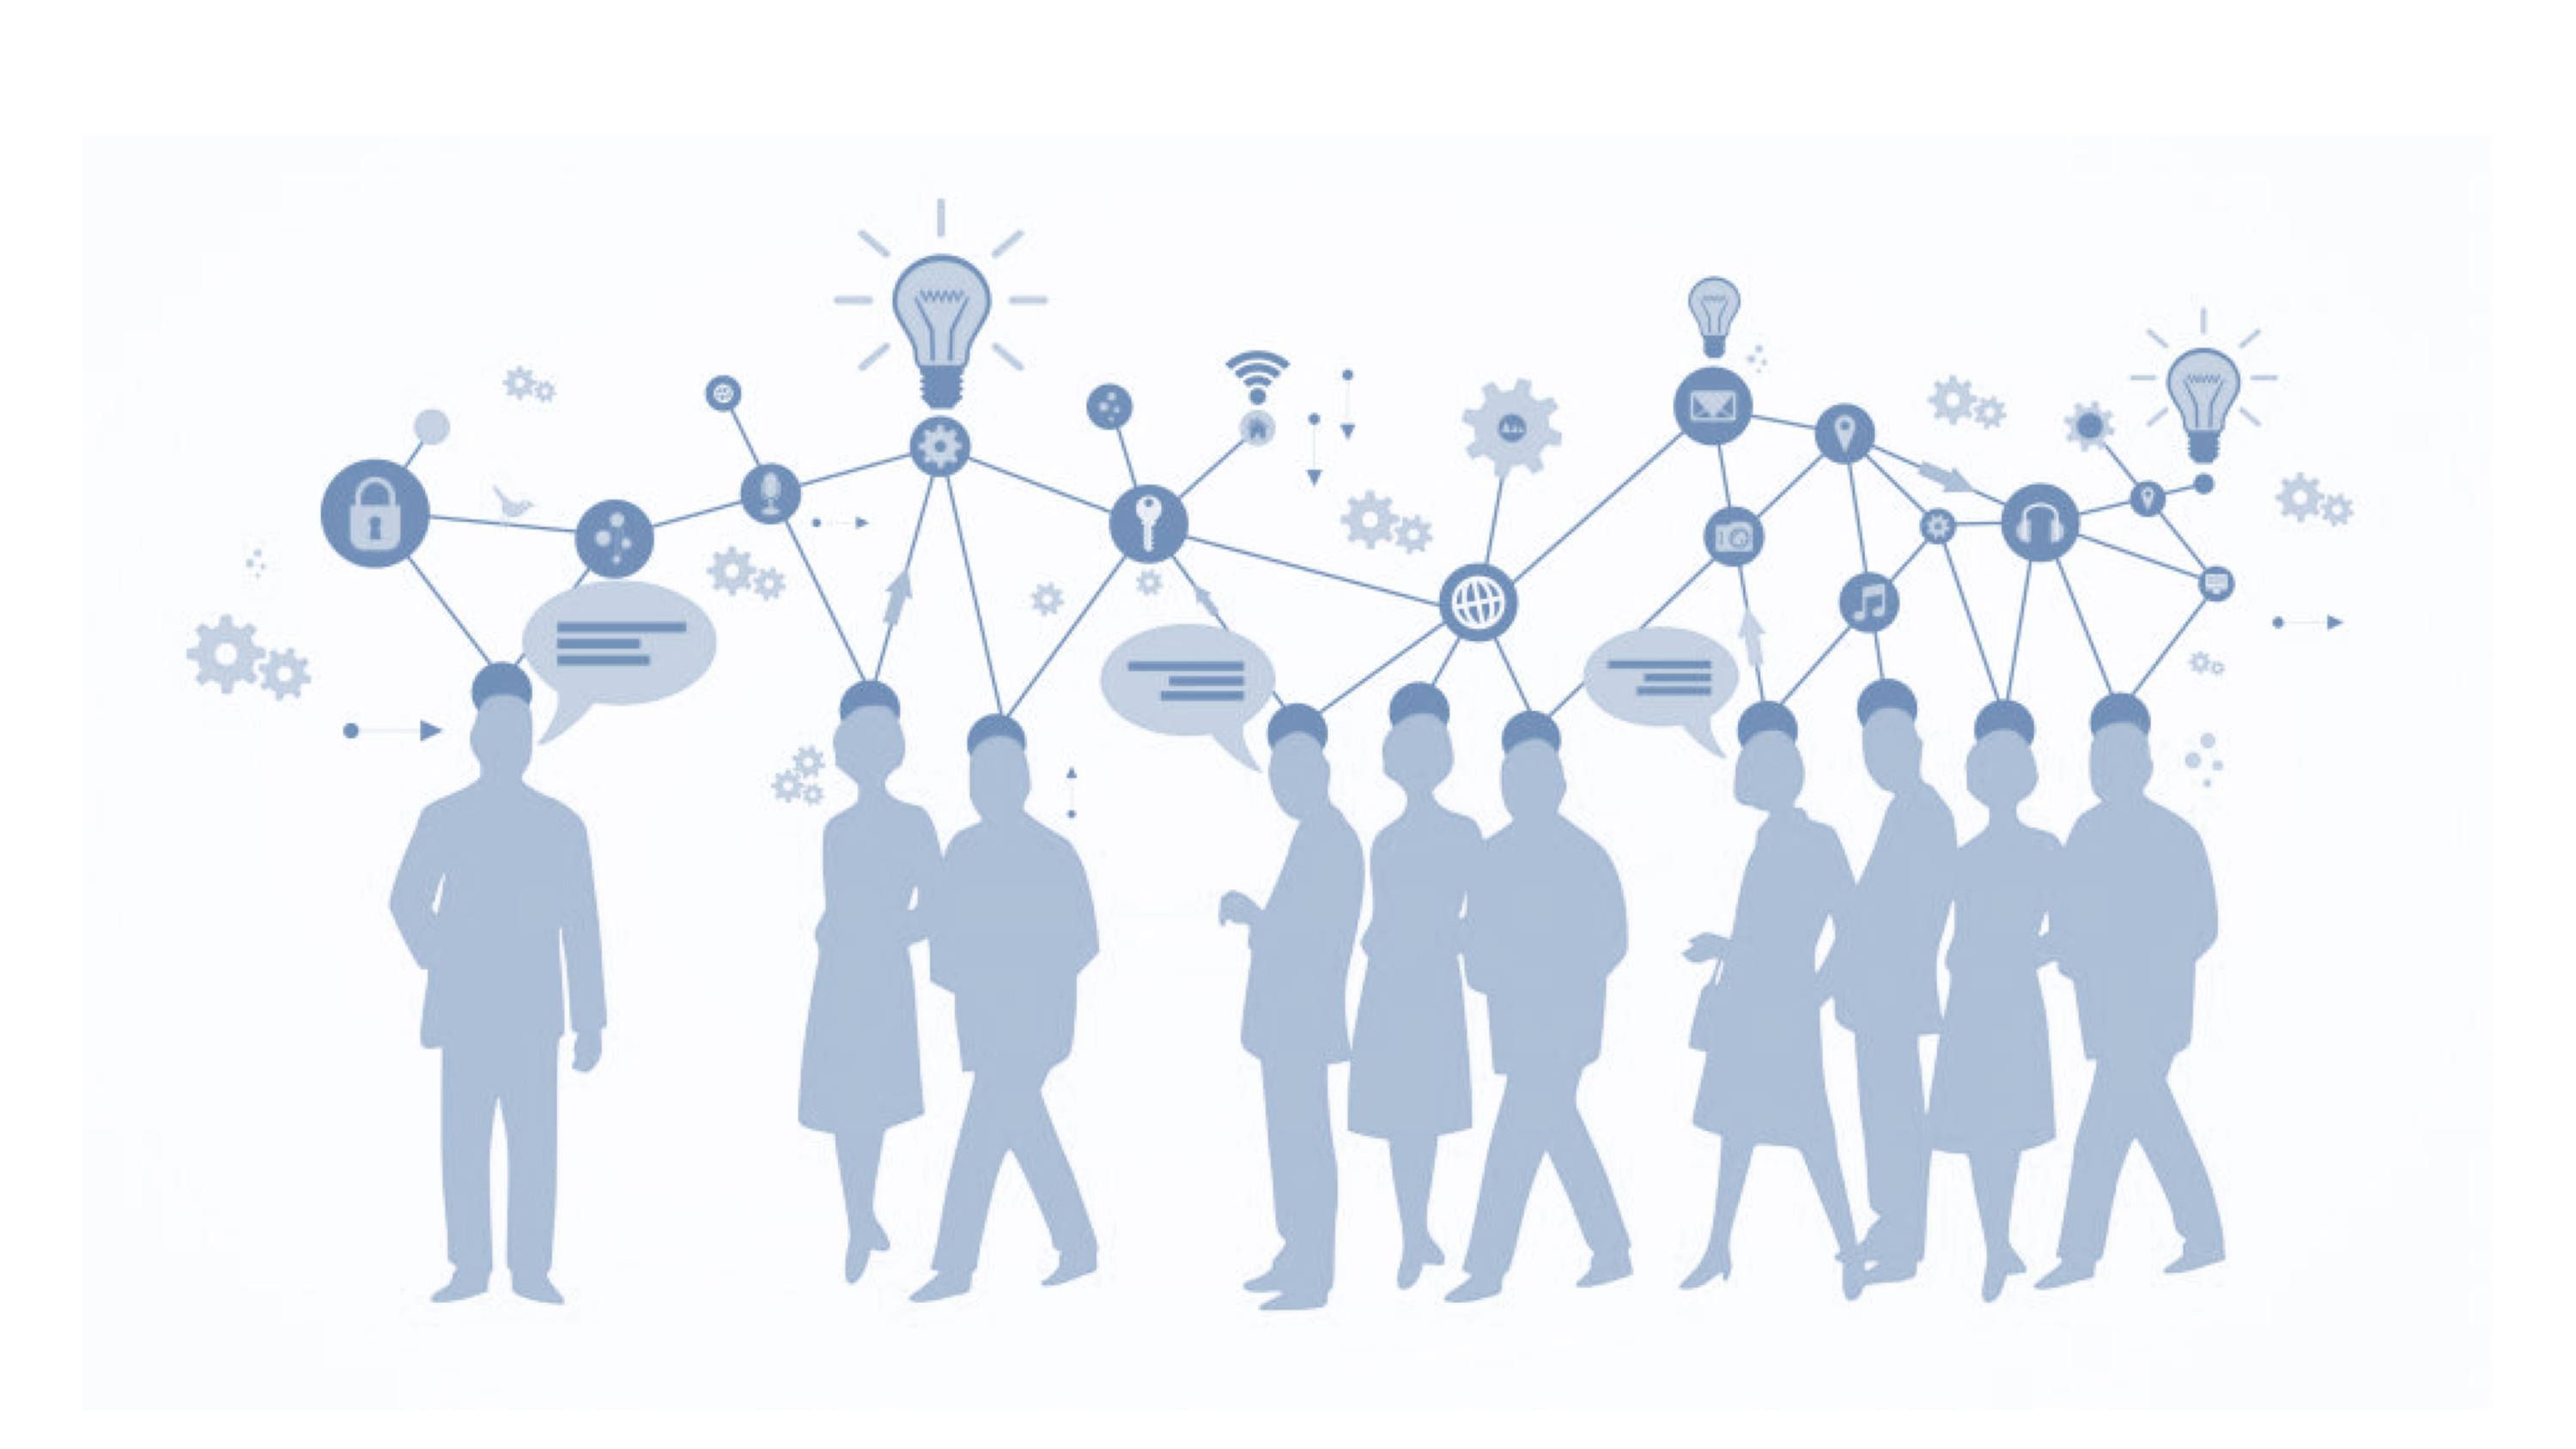 silhouettes of people networking - blue and white